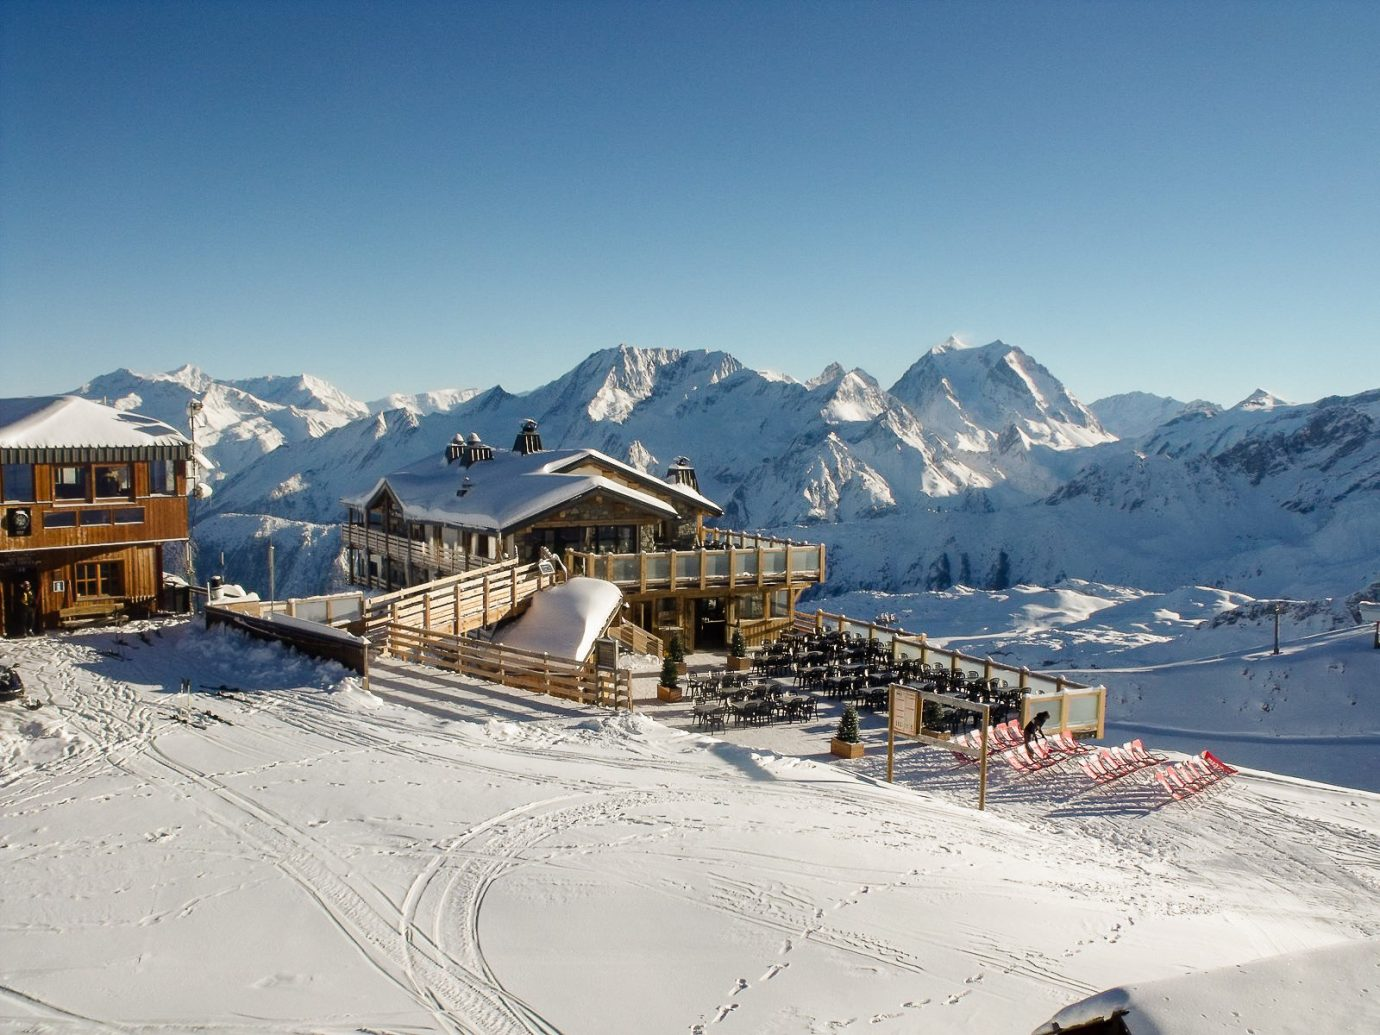 Exterior view of Le Panoramic, Chamonix, France